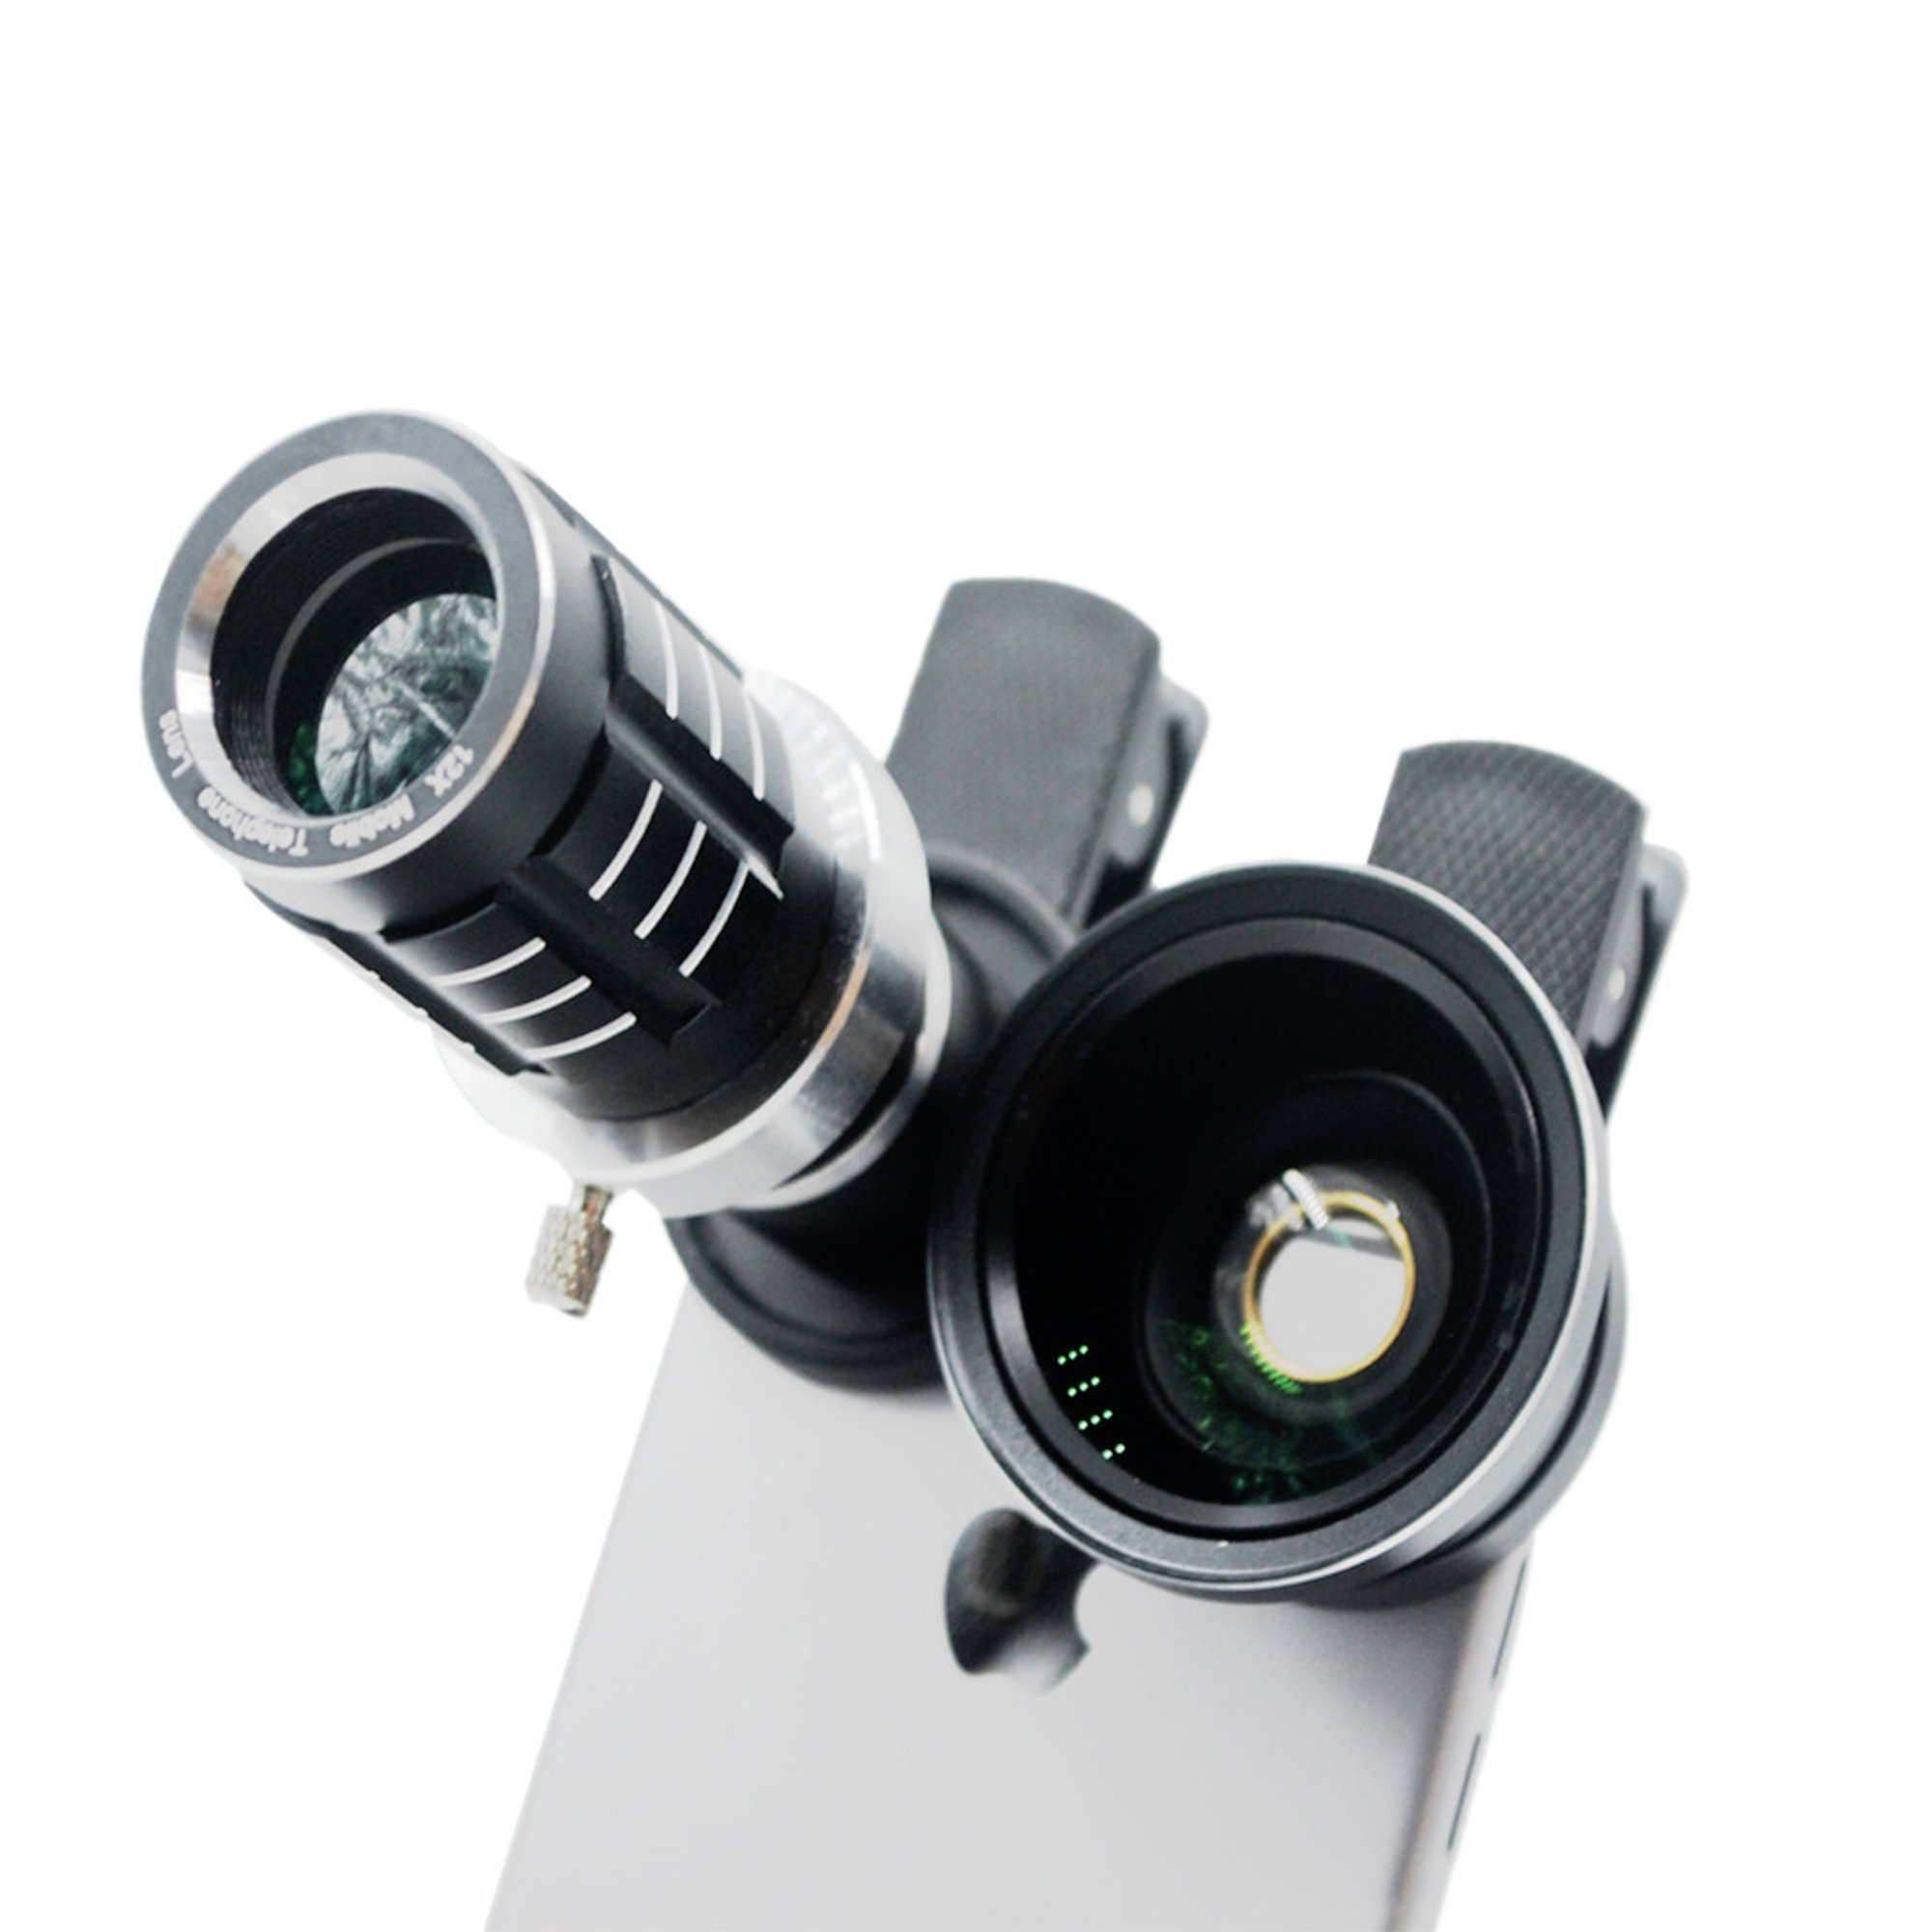 Xorastra Professional HD 12X Telephoto Telescopic Lens w/0.45 SLR Wide Angle Macro Camera Universal Clip-ons Lens Kit Military Grade Build for iPhone & Smartphones (Blk)